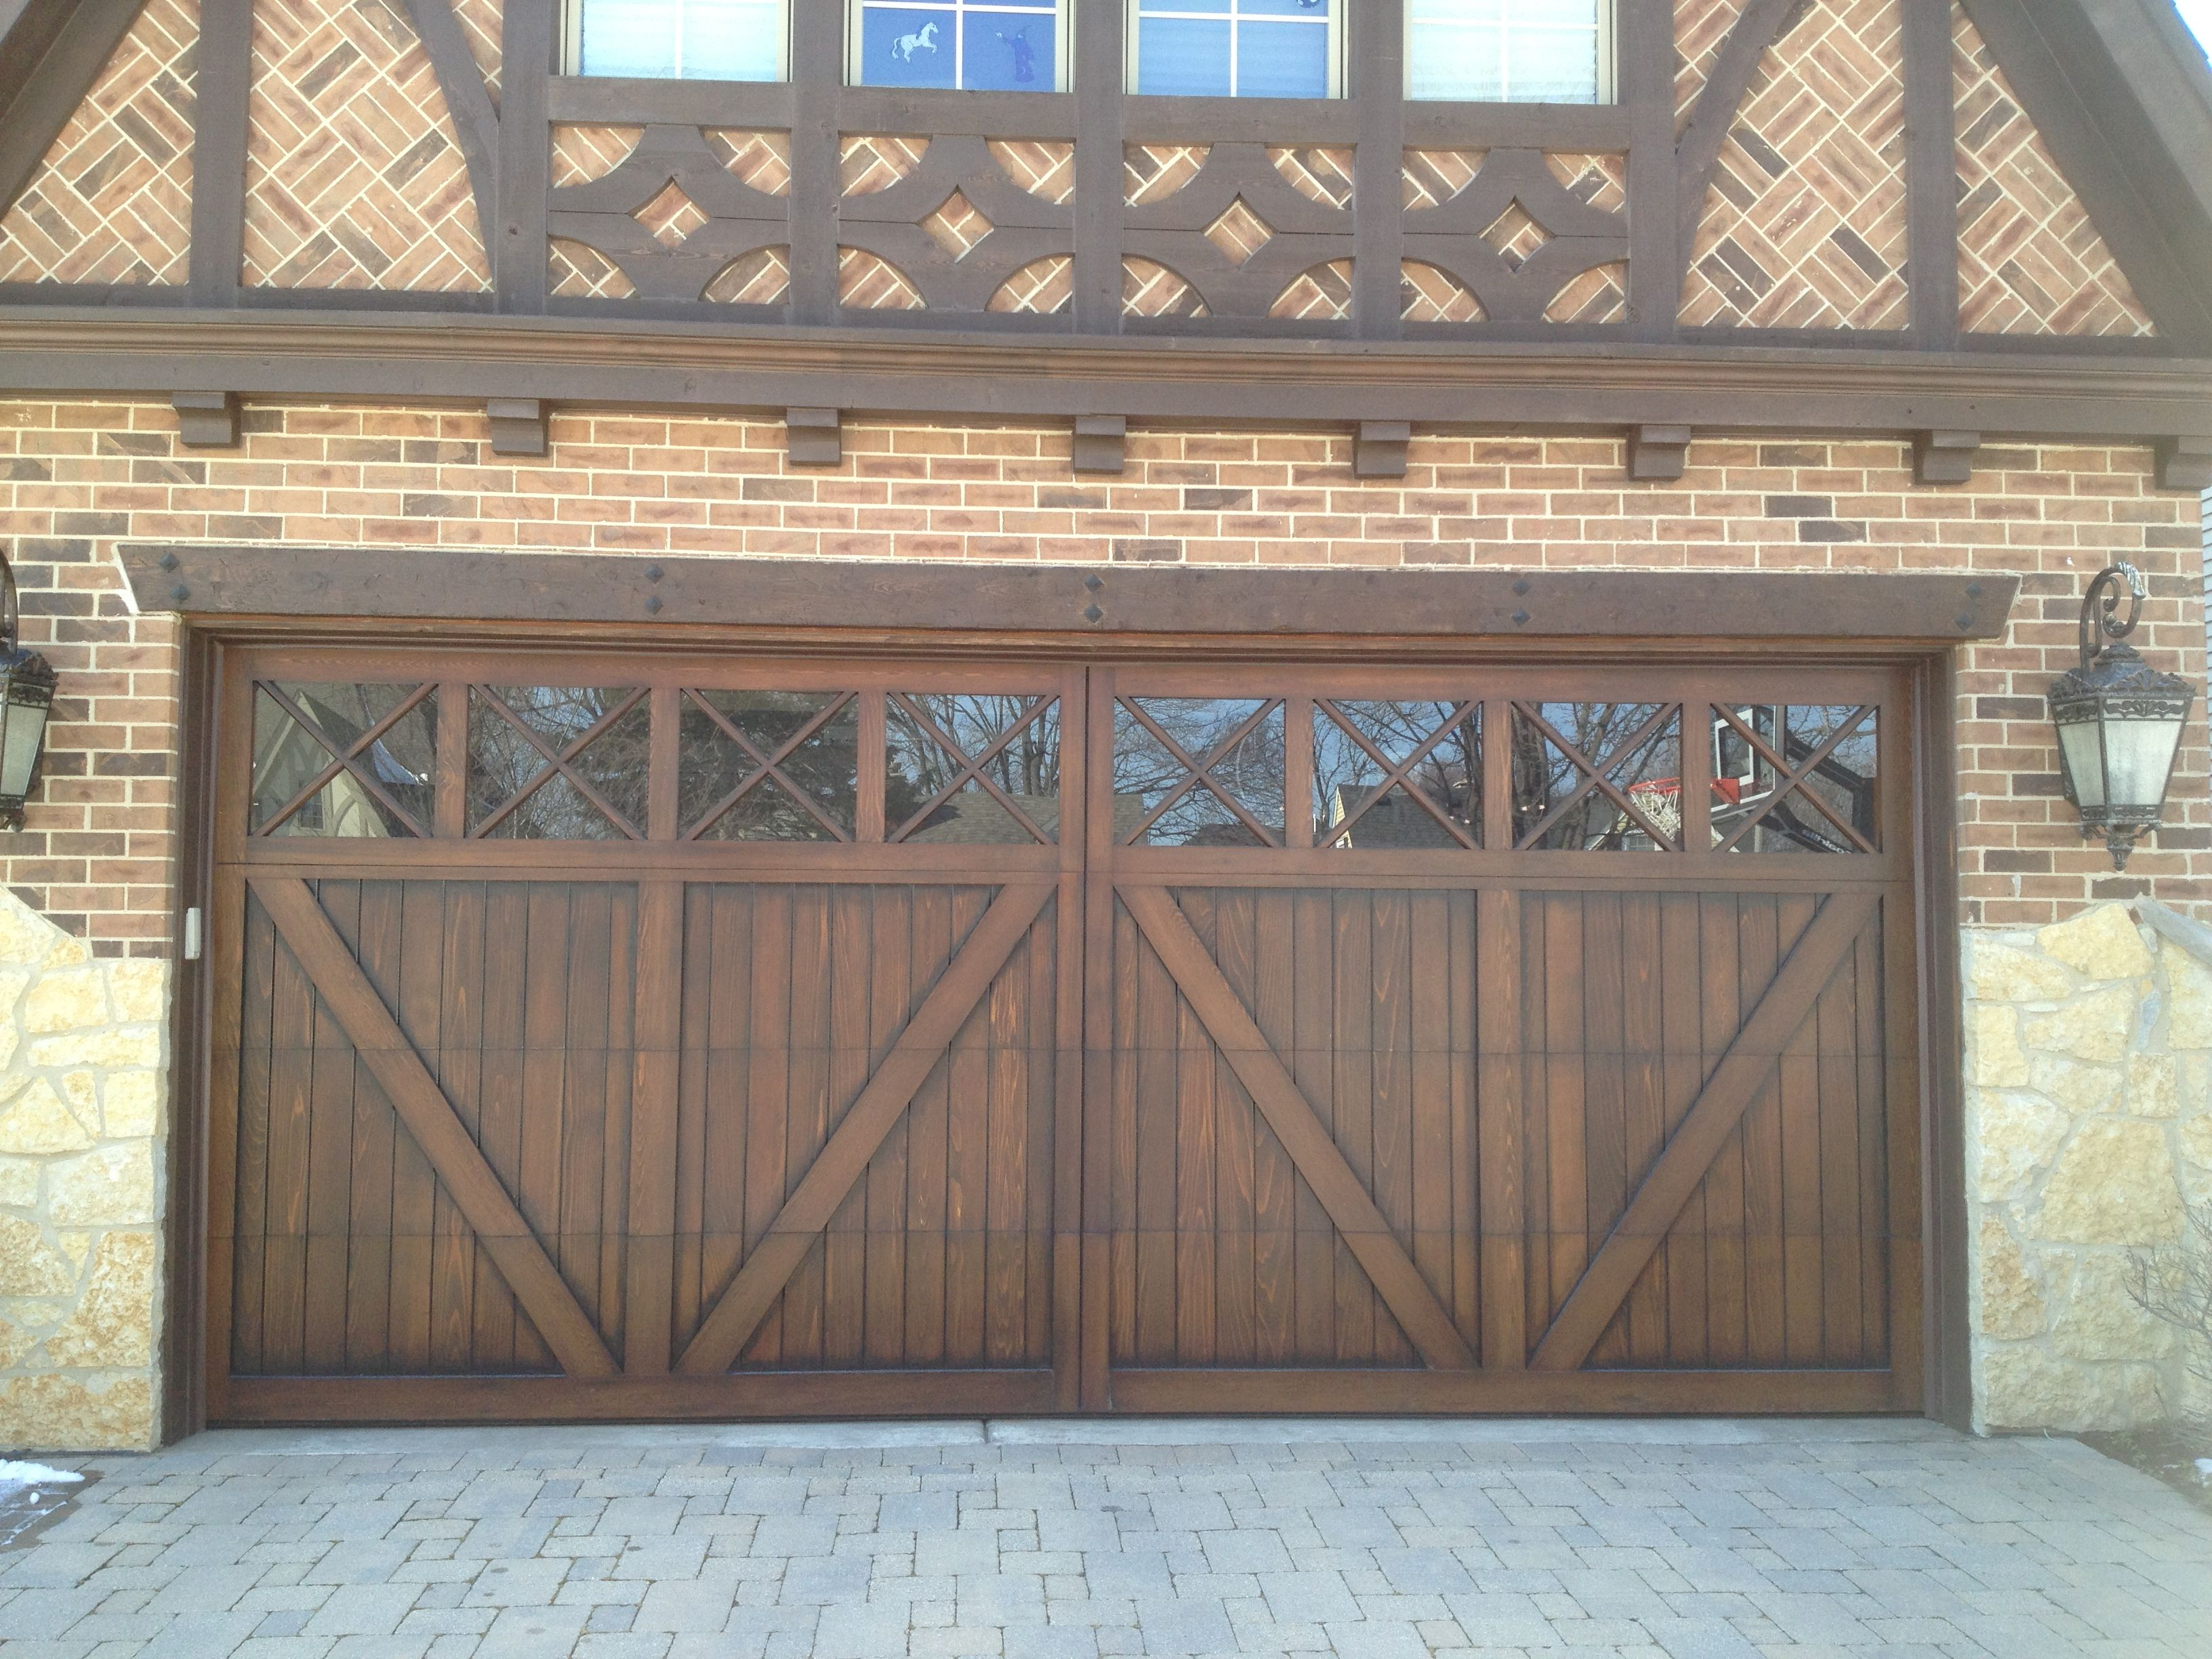 Wood Carriage House Garage Door Tudor Garage Door Www Garagedoorwebsite Com Garage Door Design Carriage Style Garage Doors Garage Door Styles